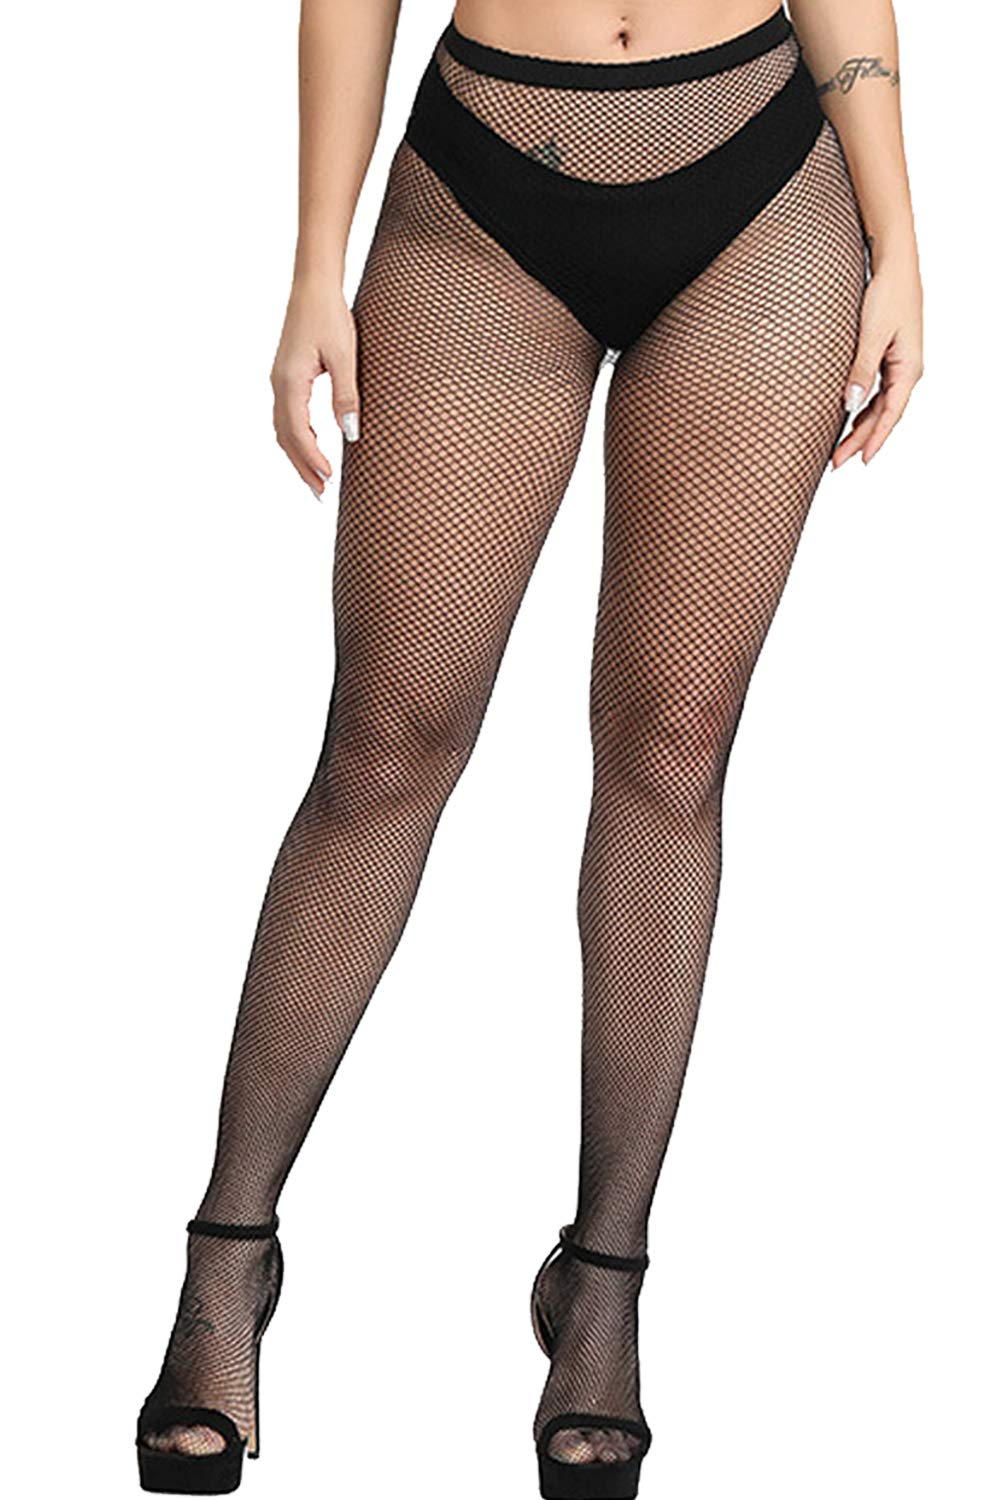 E-Laurels Womens High Waist Patterned Fishnet Tights Suspenders Pantyhose Thigh High Stockings Black